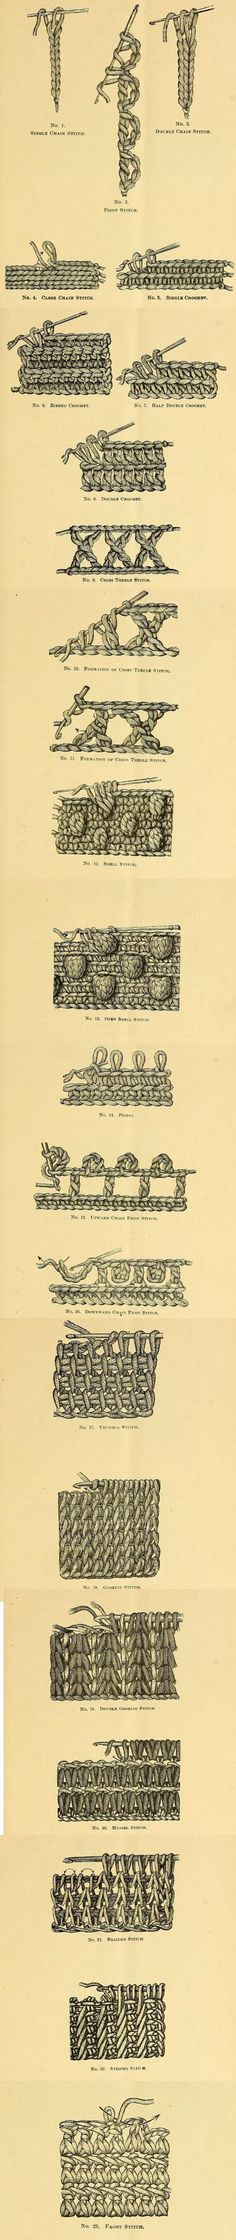 From the 1883 book, How to Crochet......read it in full on the DIY Collaboratorium's Crochet Library page